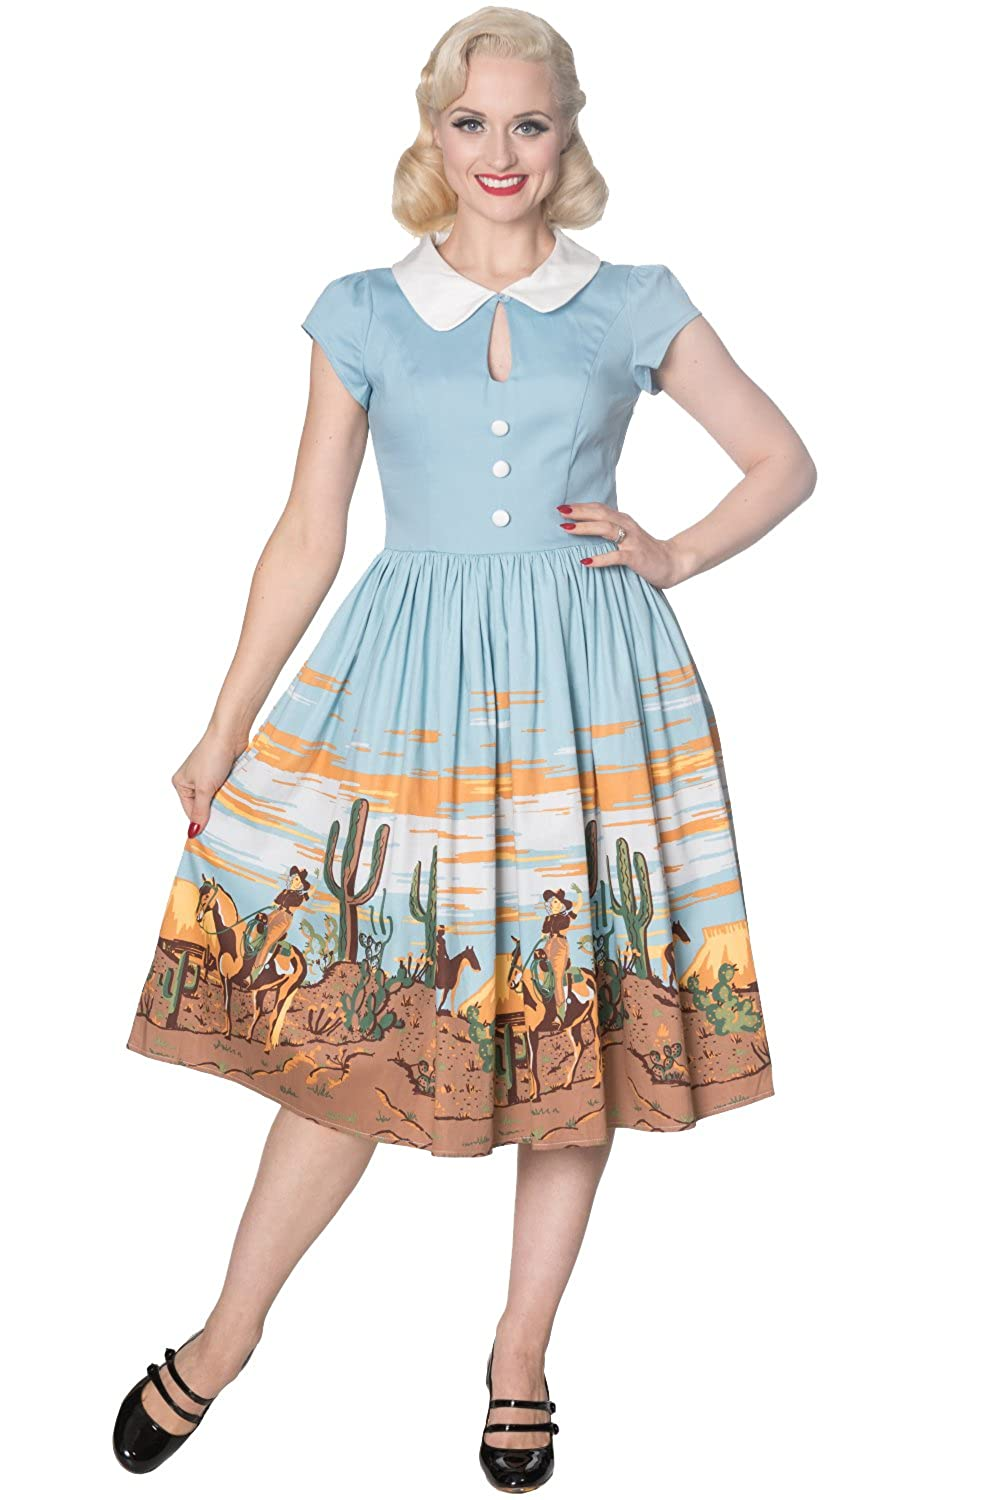 Pin Up Dresses | Pin Up Clothing Banned Magical Day Retro Fifties Shirtwaist Dress $62.95 AT vintagedancer.com